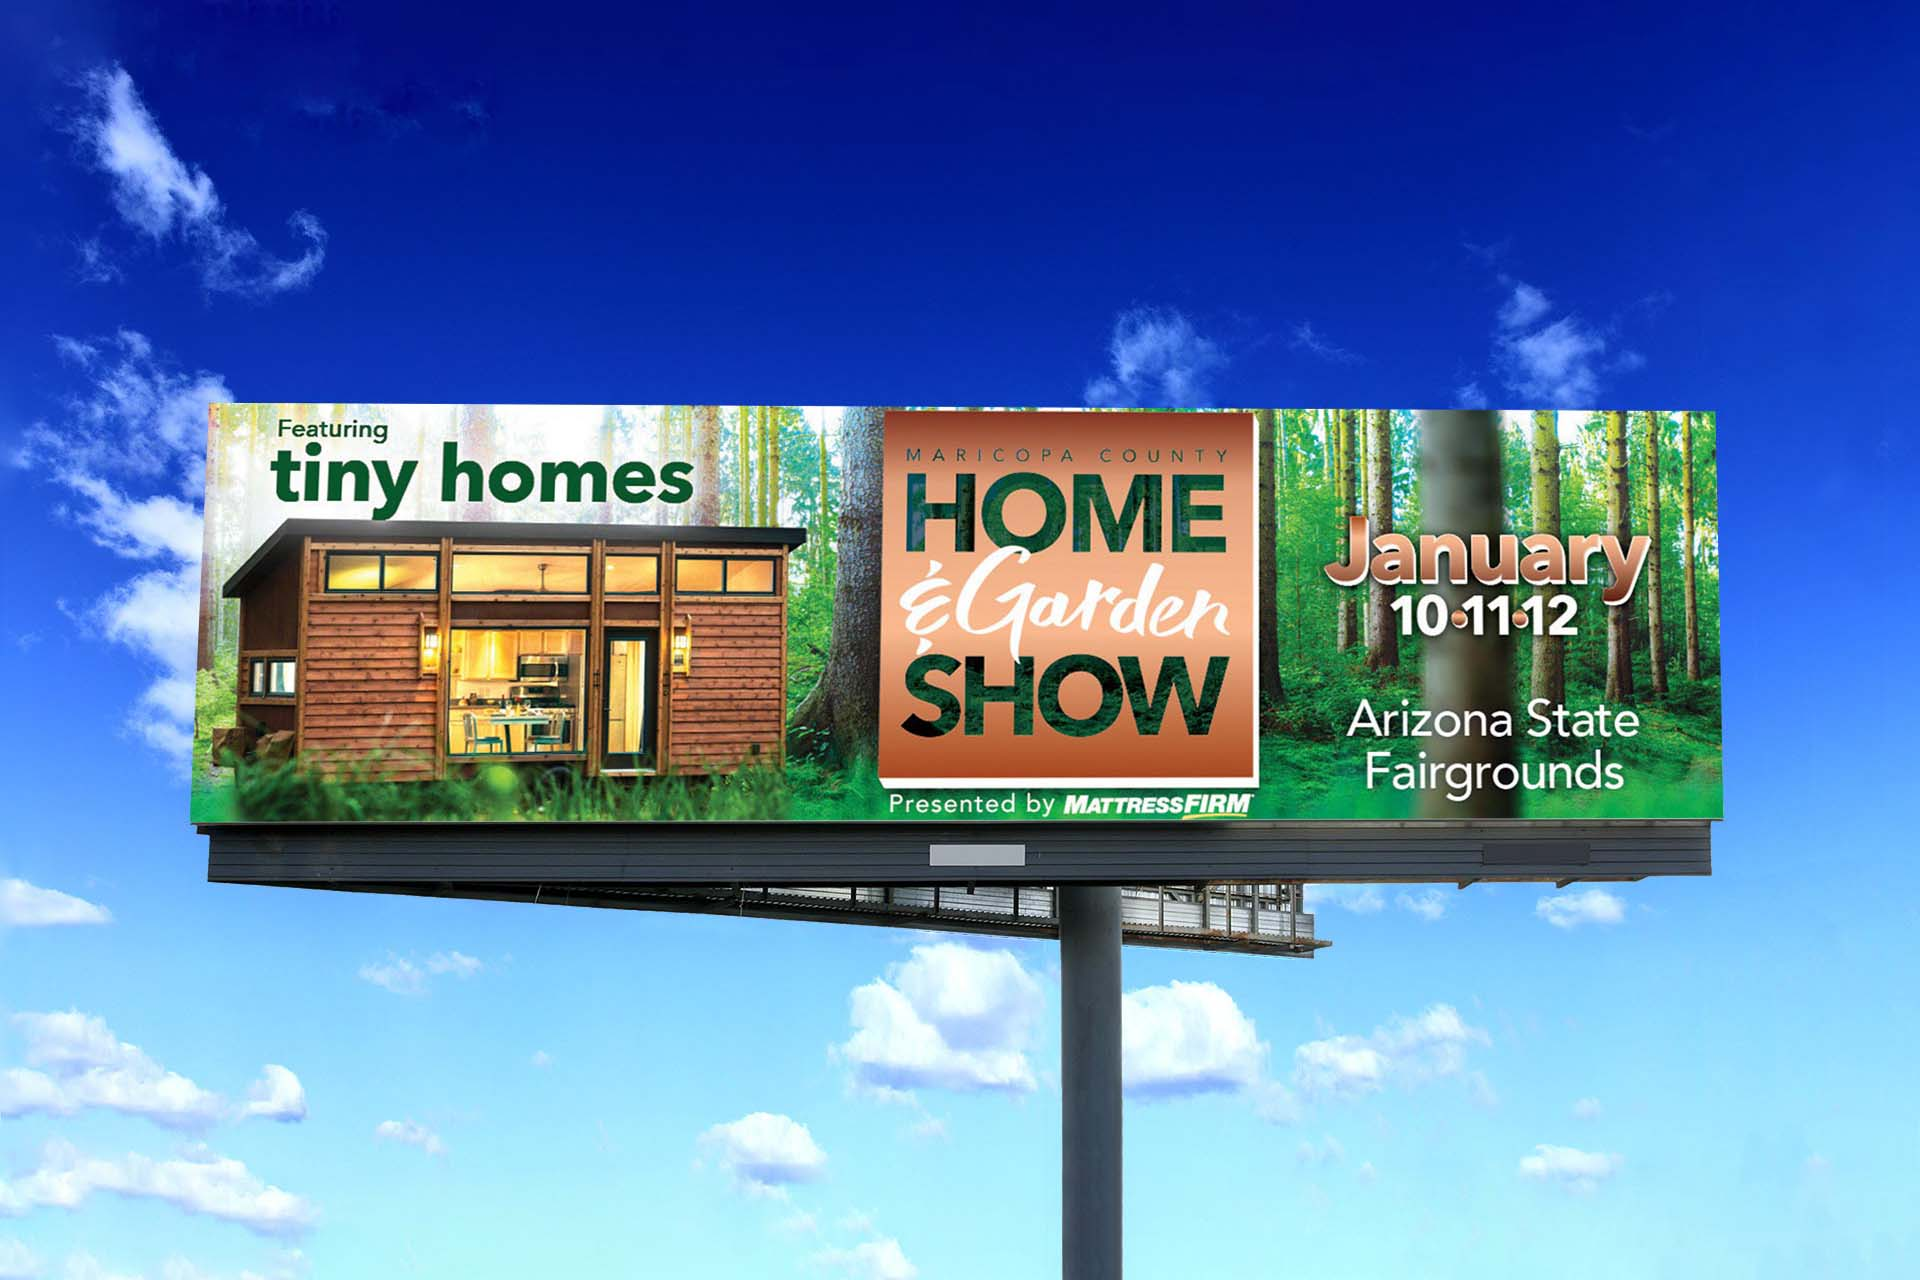 2020 January Maricopa County Home & Garden Show billboard featuring Tiny Homes by Dustin Drake